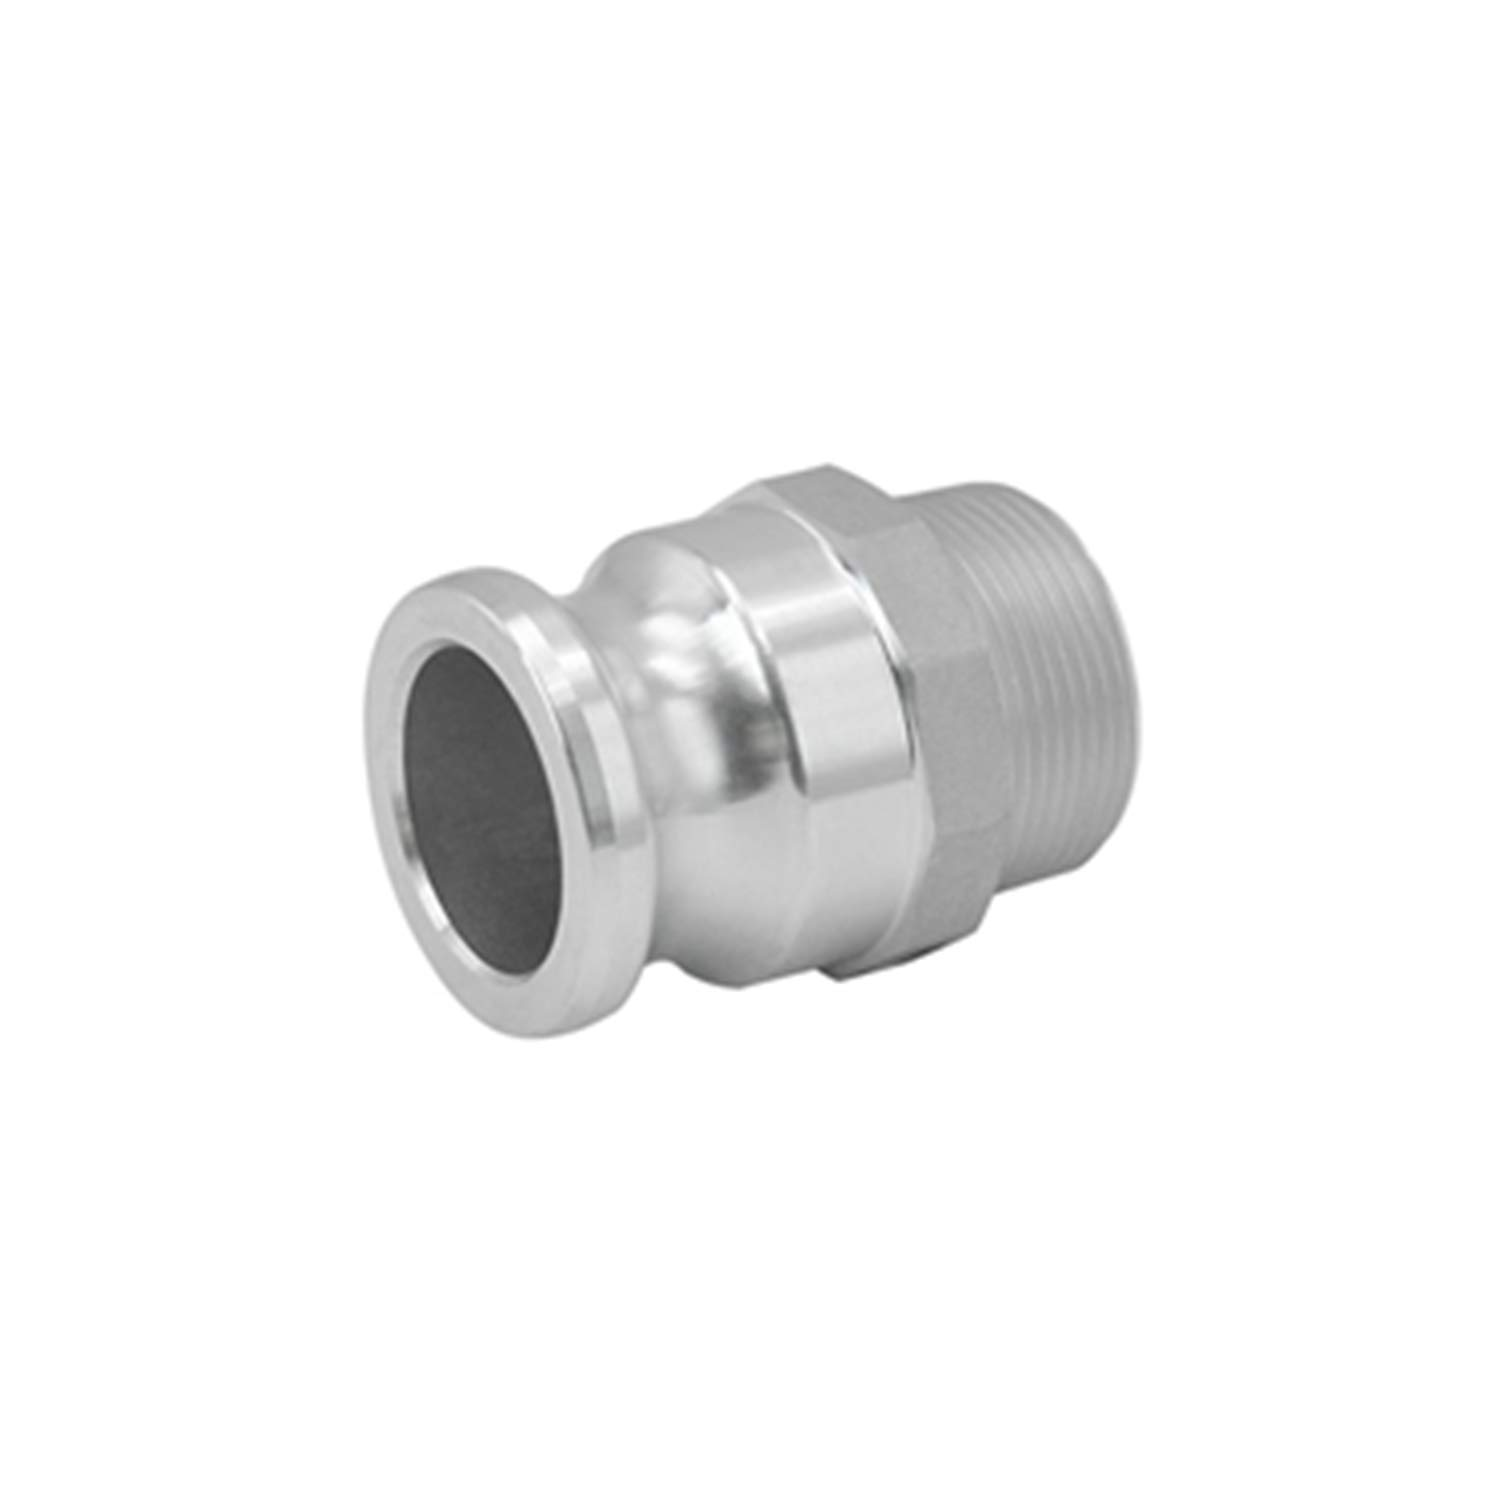 SAFBY 2 PCS Aluminum Global Type F Cam and Groove Hose Fitting 2 Plug x 2 NPT Male with 2 PCS 2 Camlock Gasket Fitting